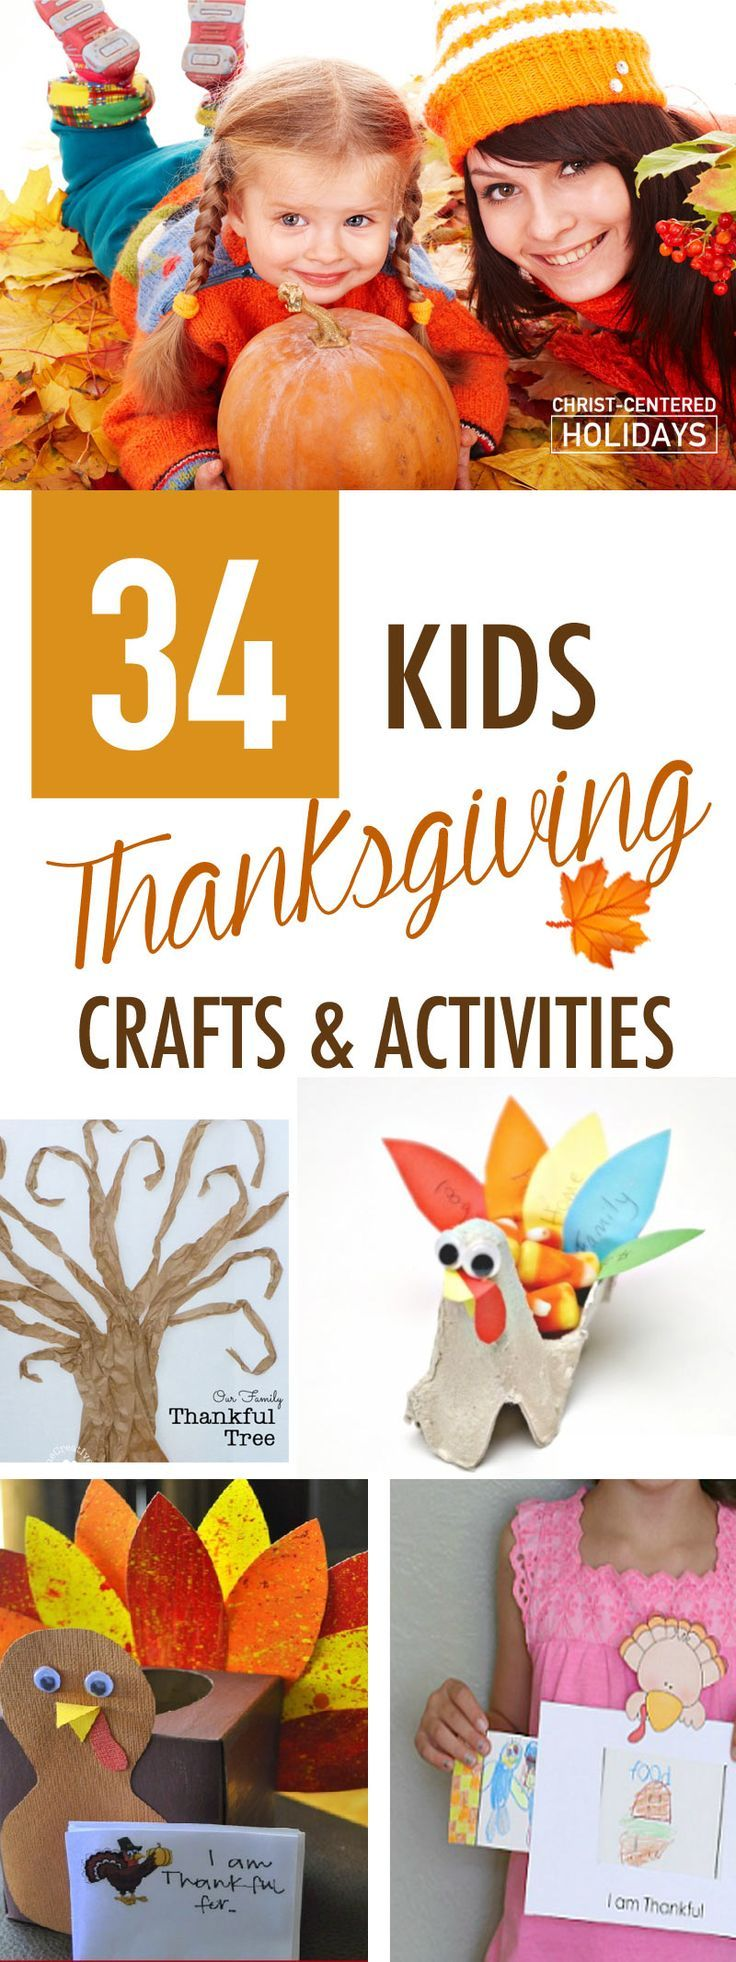 Wow Check Out This Awesome List Of Thanksgiving Crafts For Kids Plus A List O Thanksgiving Kids Thanksgiving Activities For Kids Thanksgiving Crafts For Kids